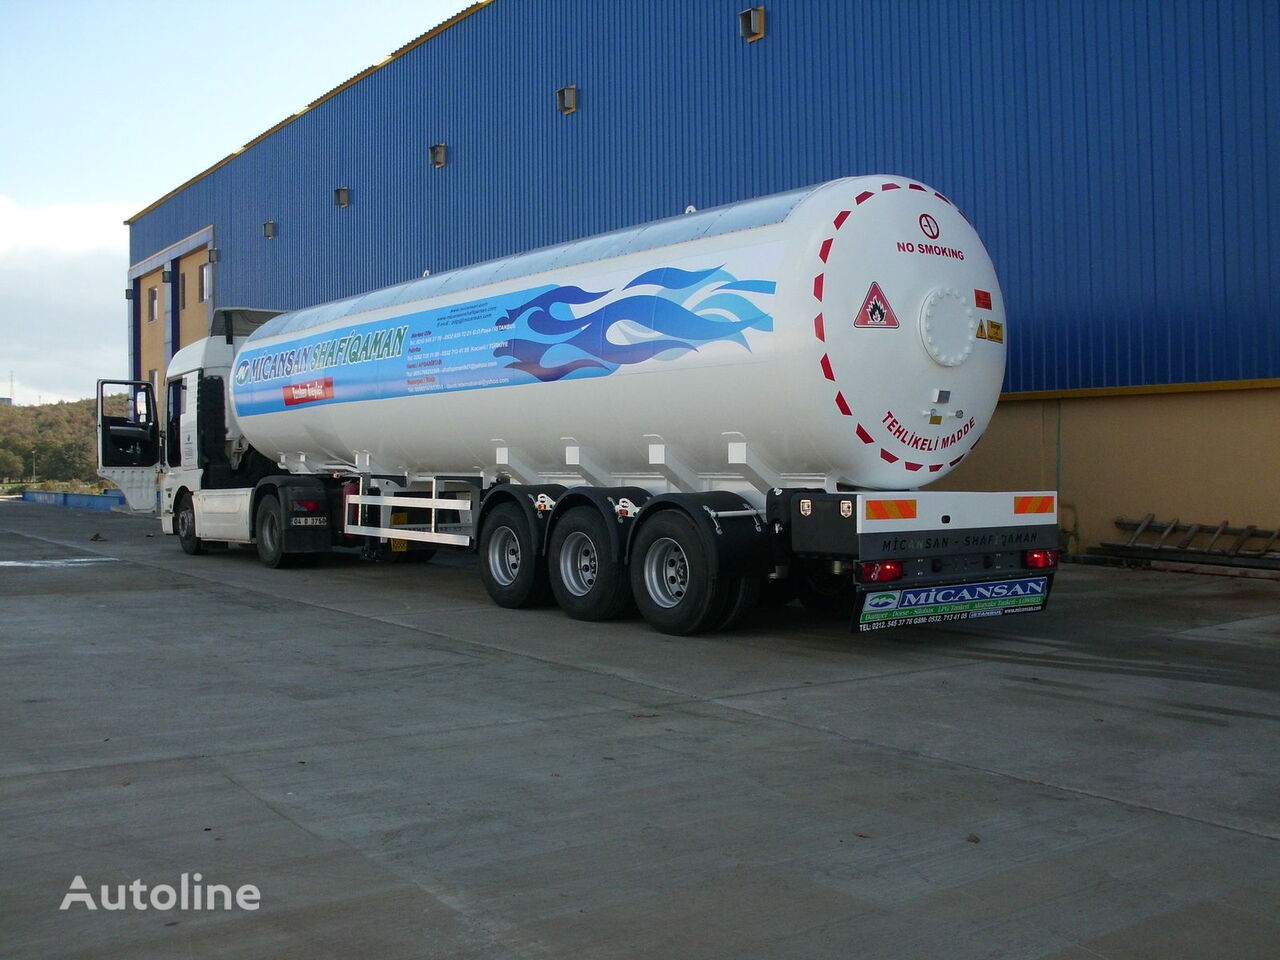 new Micansan BIG DISCOUNT 2021 35-45-50-57-60 m3 EASY PAYMENT 3-4 TIMES FOR 4 gas tank trailer